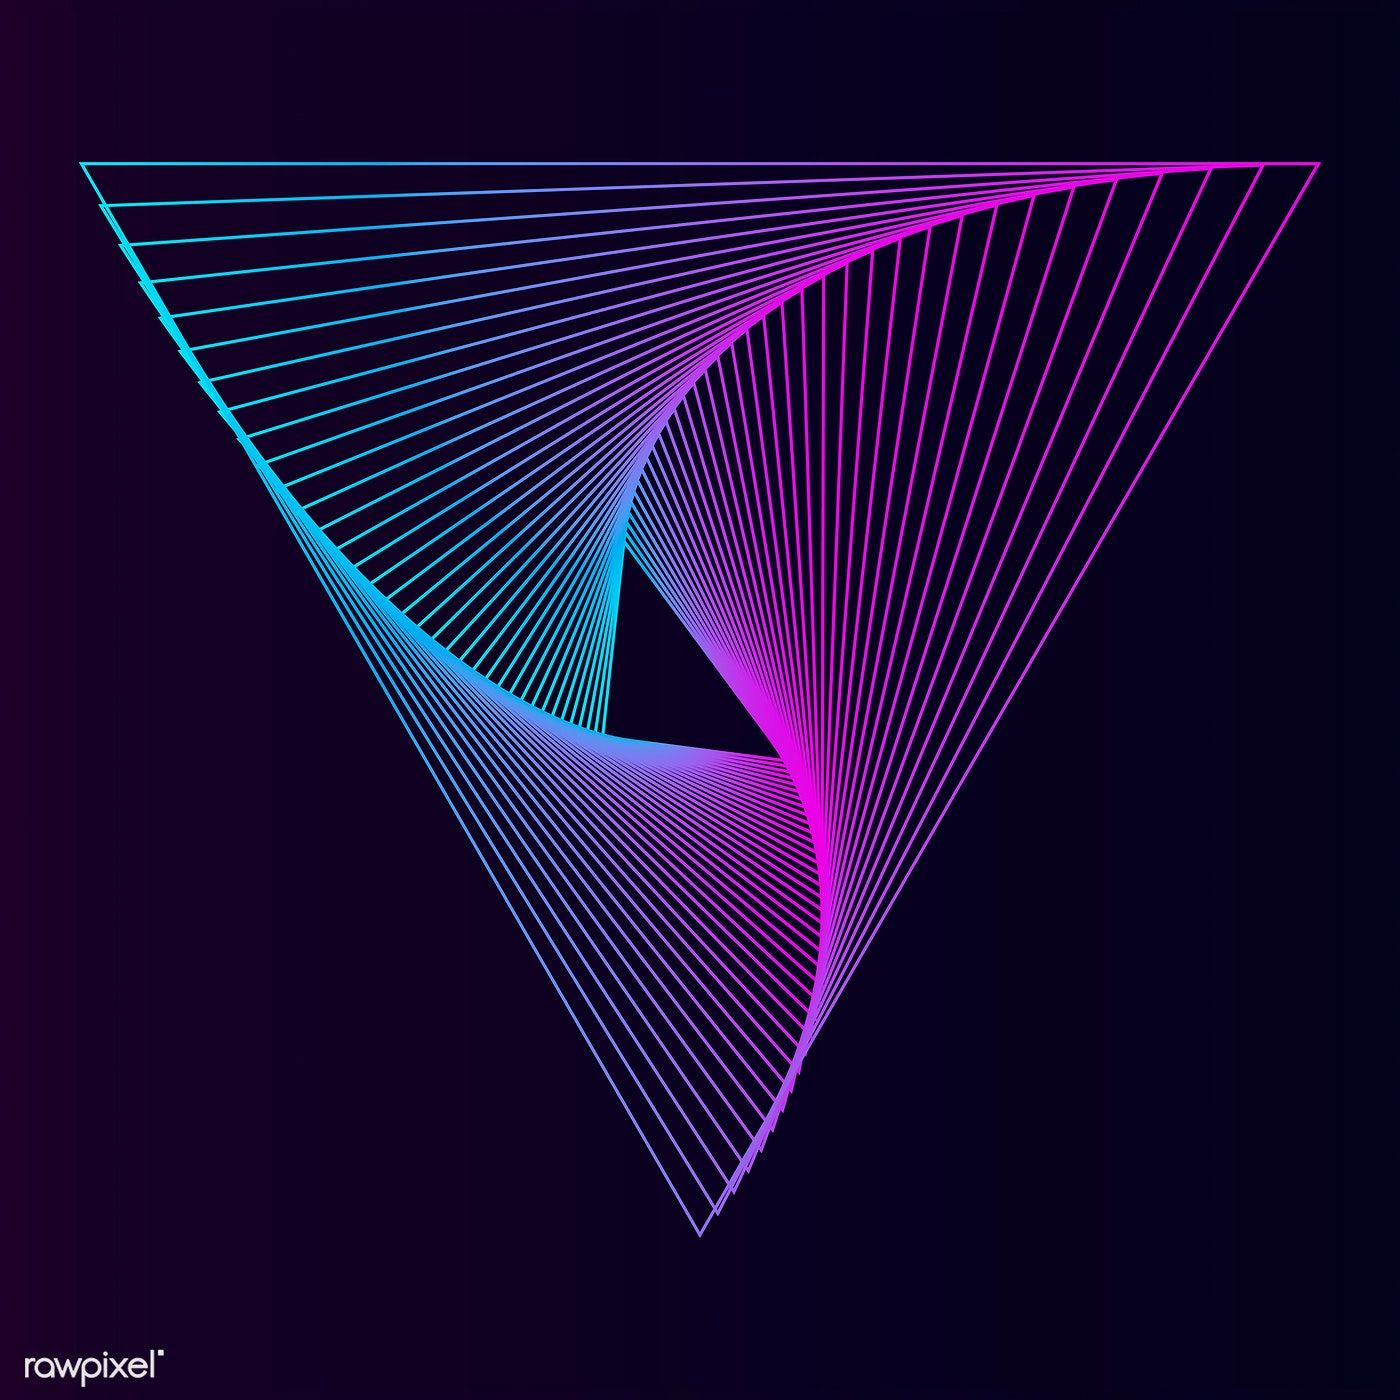 Abstract dynamic pattern wallpaper vector free image by